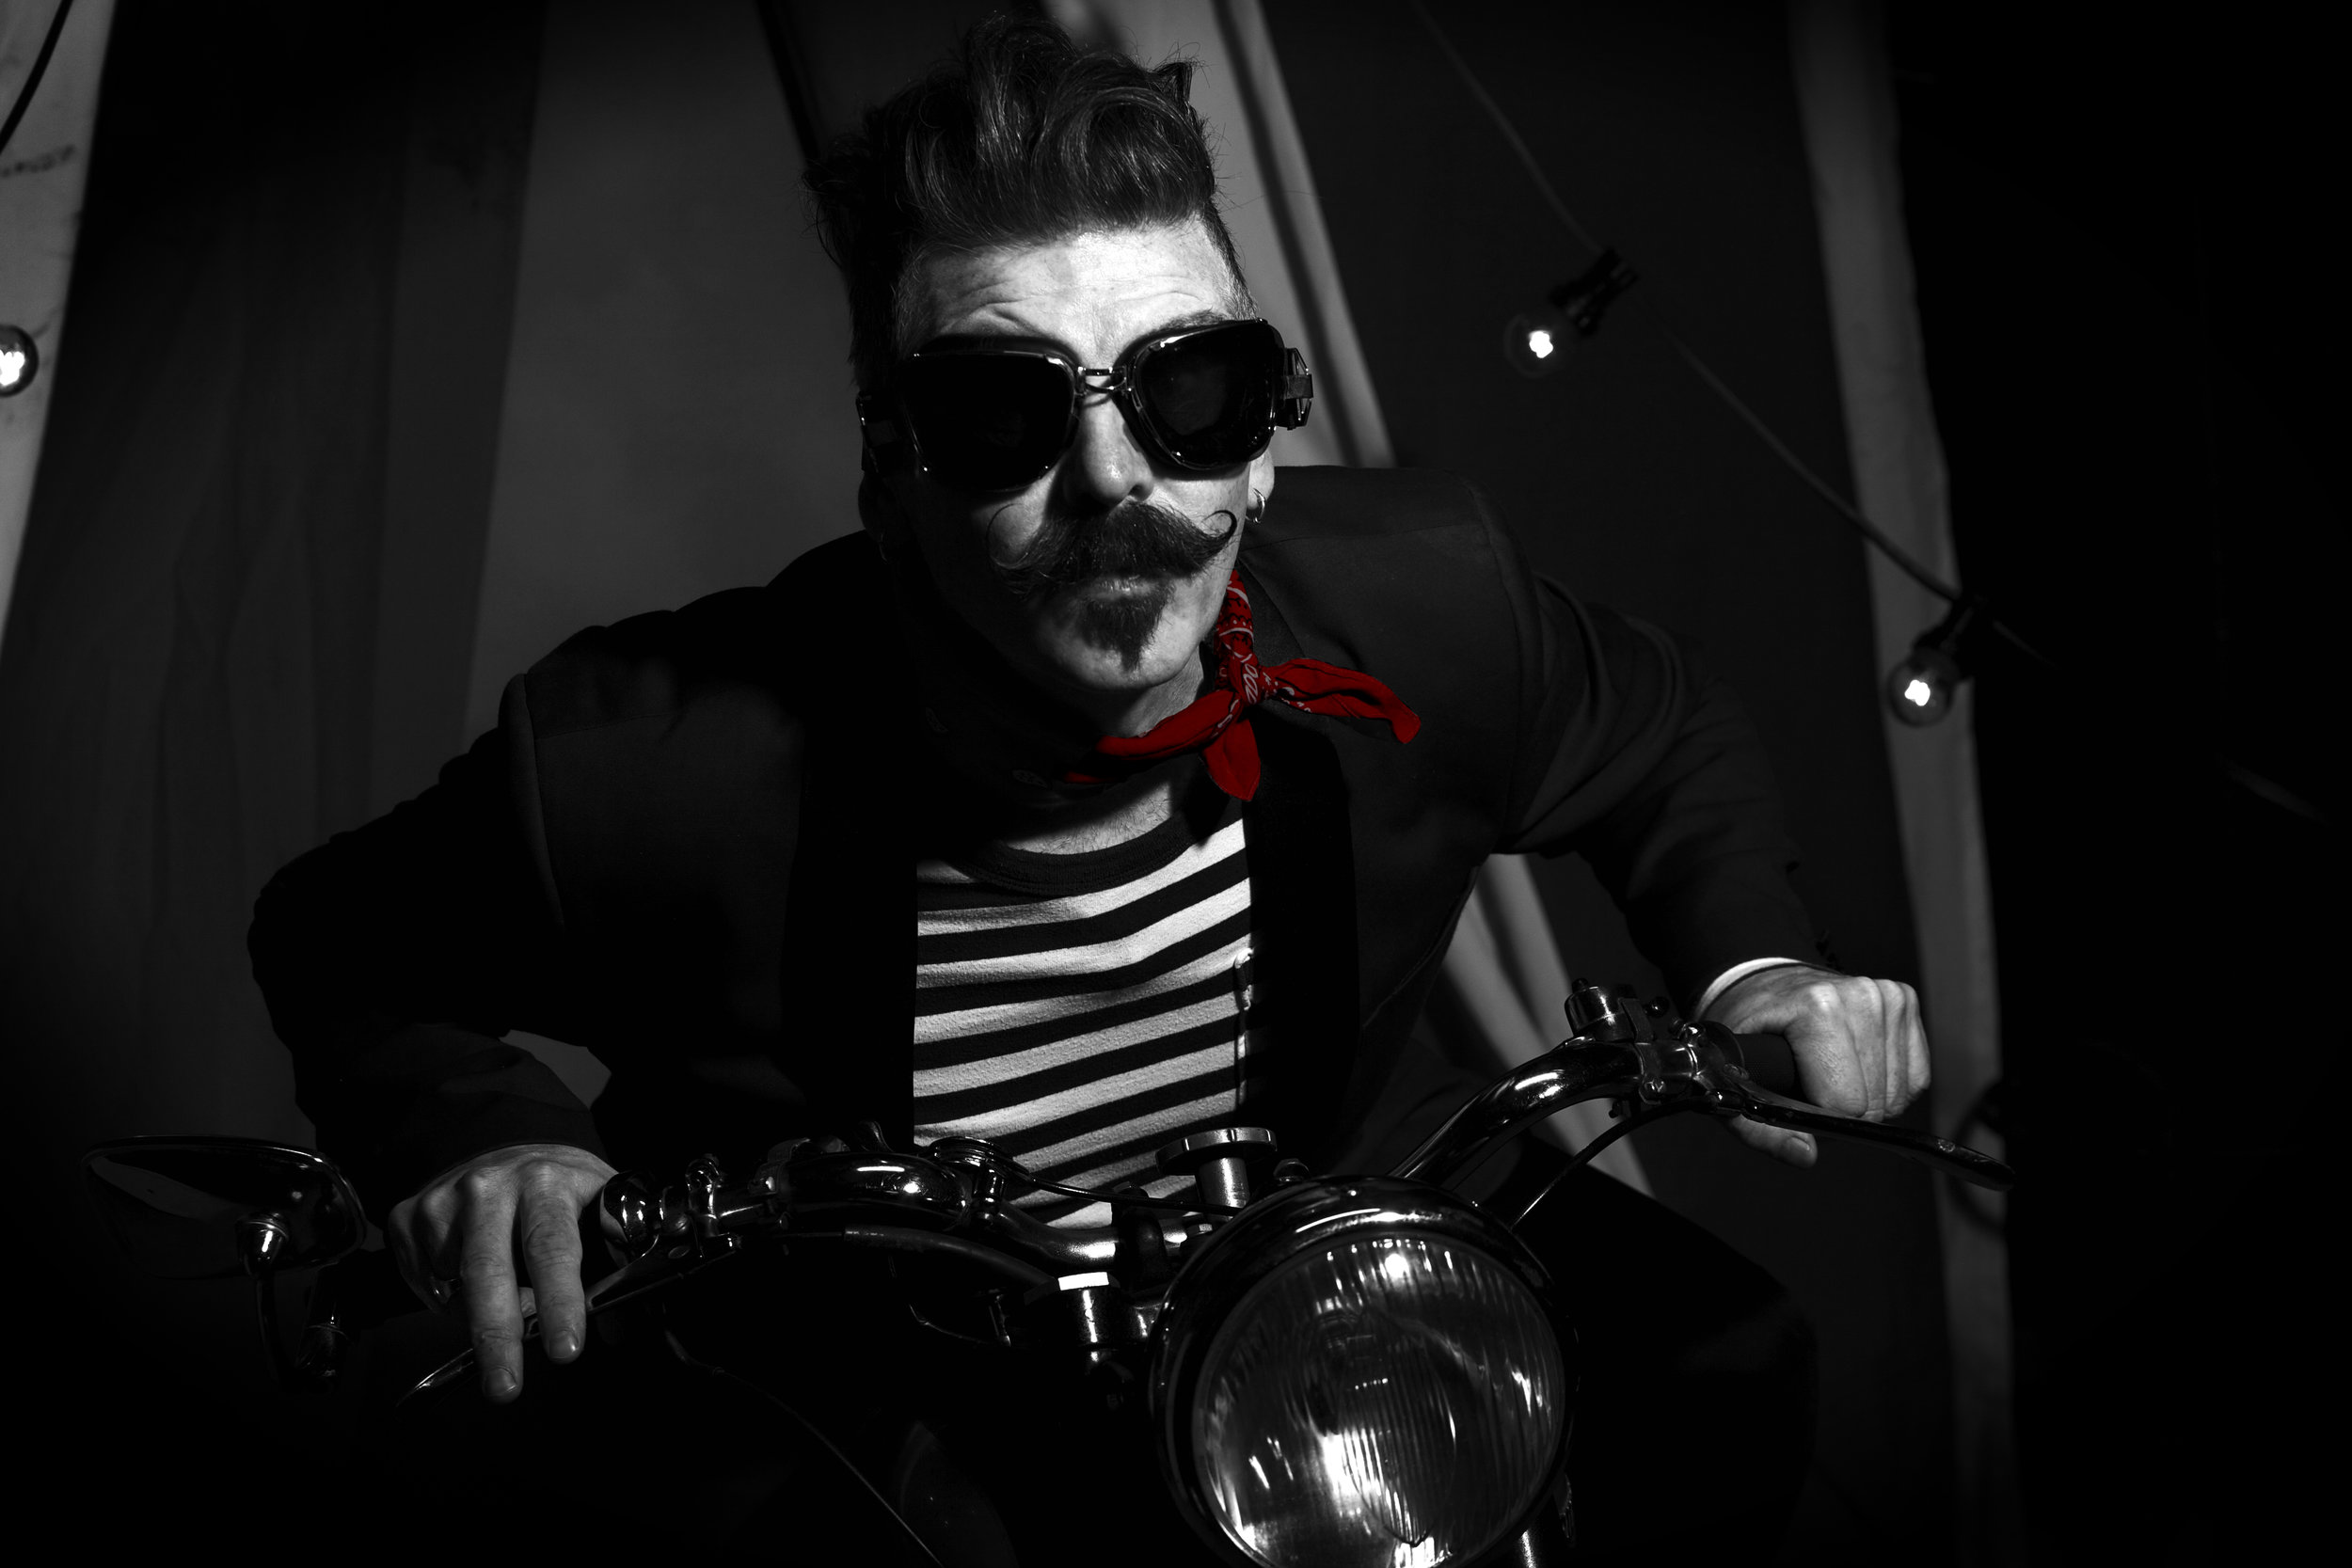 Jerry Fish_ motorcycle- 5616 × 3744.jpg